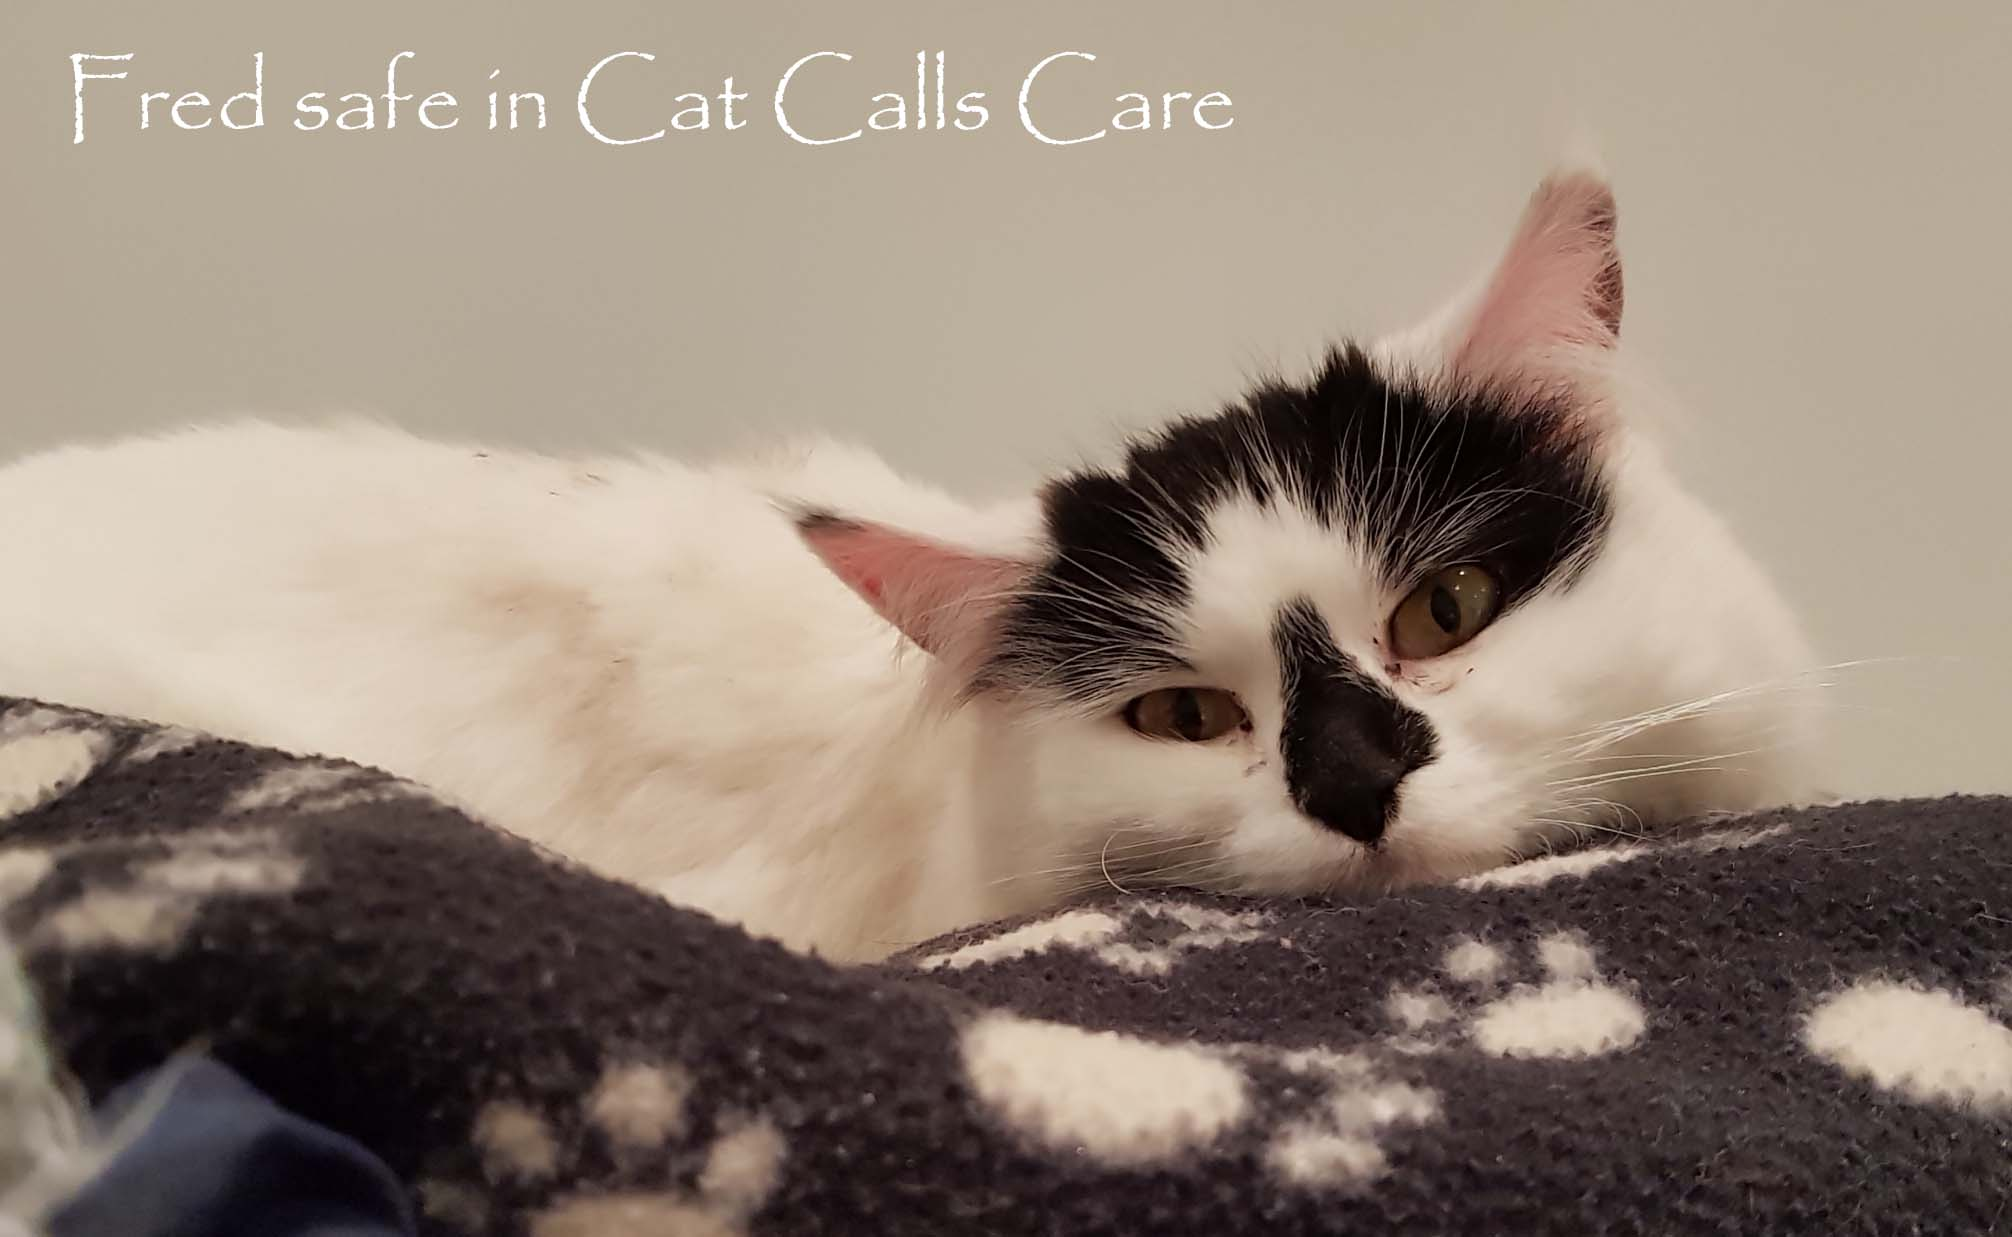 Fred safe in Cat Calls care